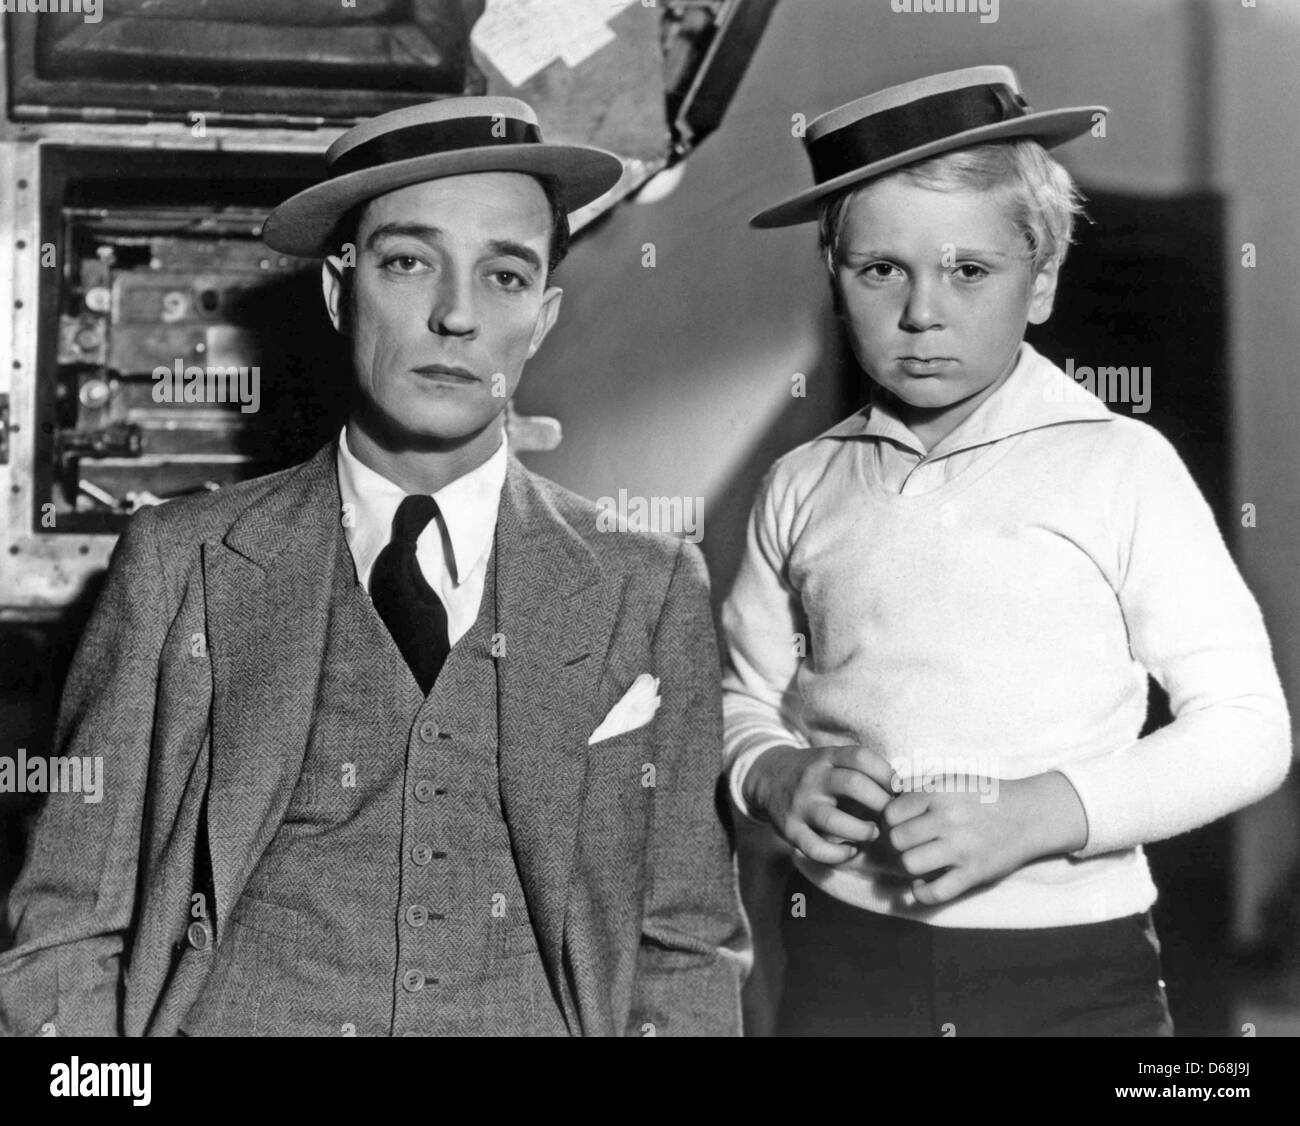 BUSTER KEATON US silent film star at left with Jackie Coogan - Stock Image eda84af460e